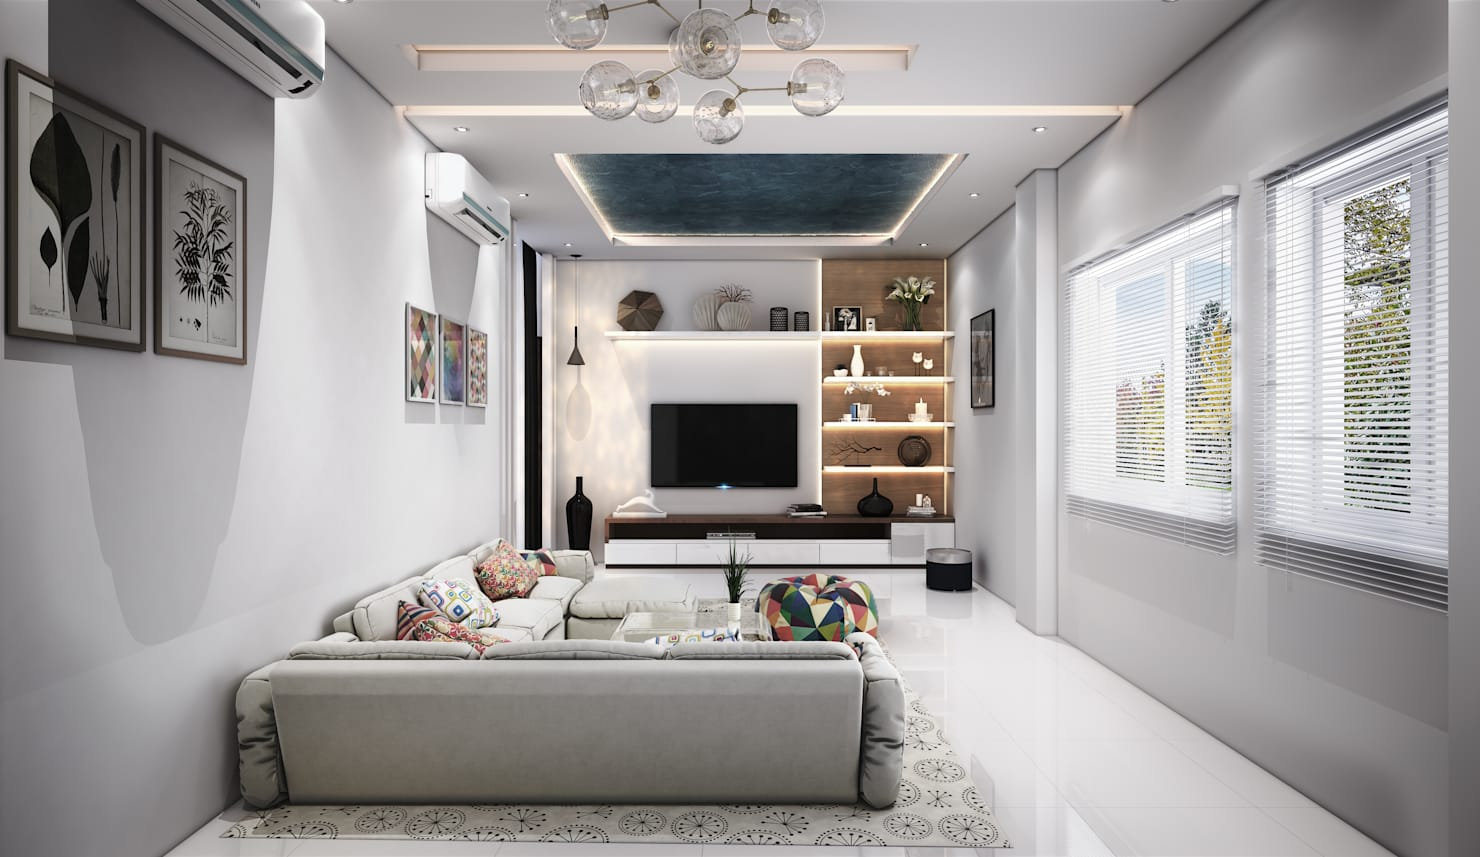 Residential flat interiors by professionals in Hyderabad